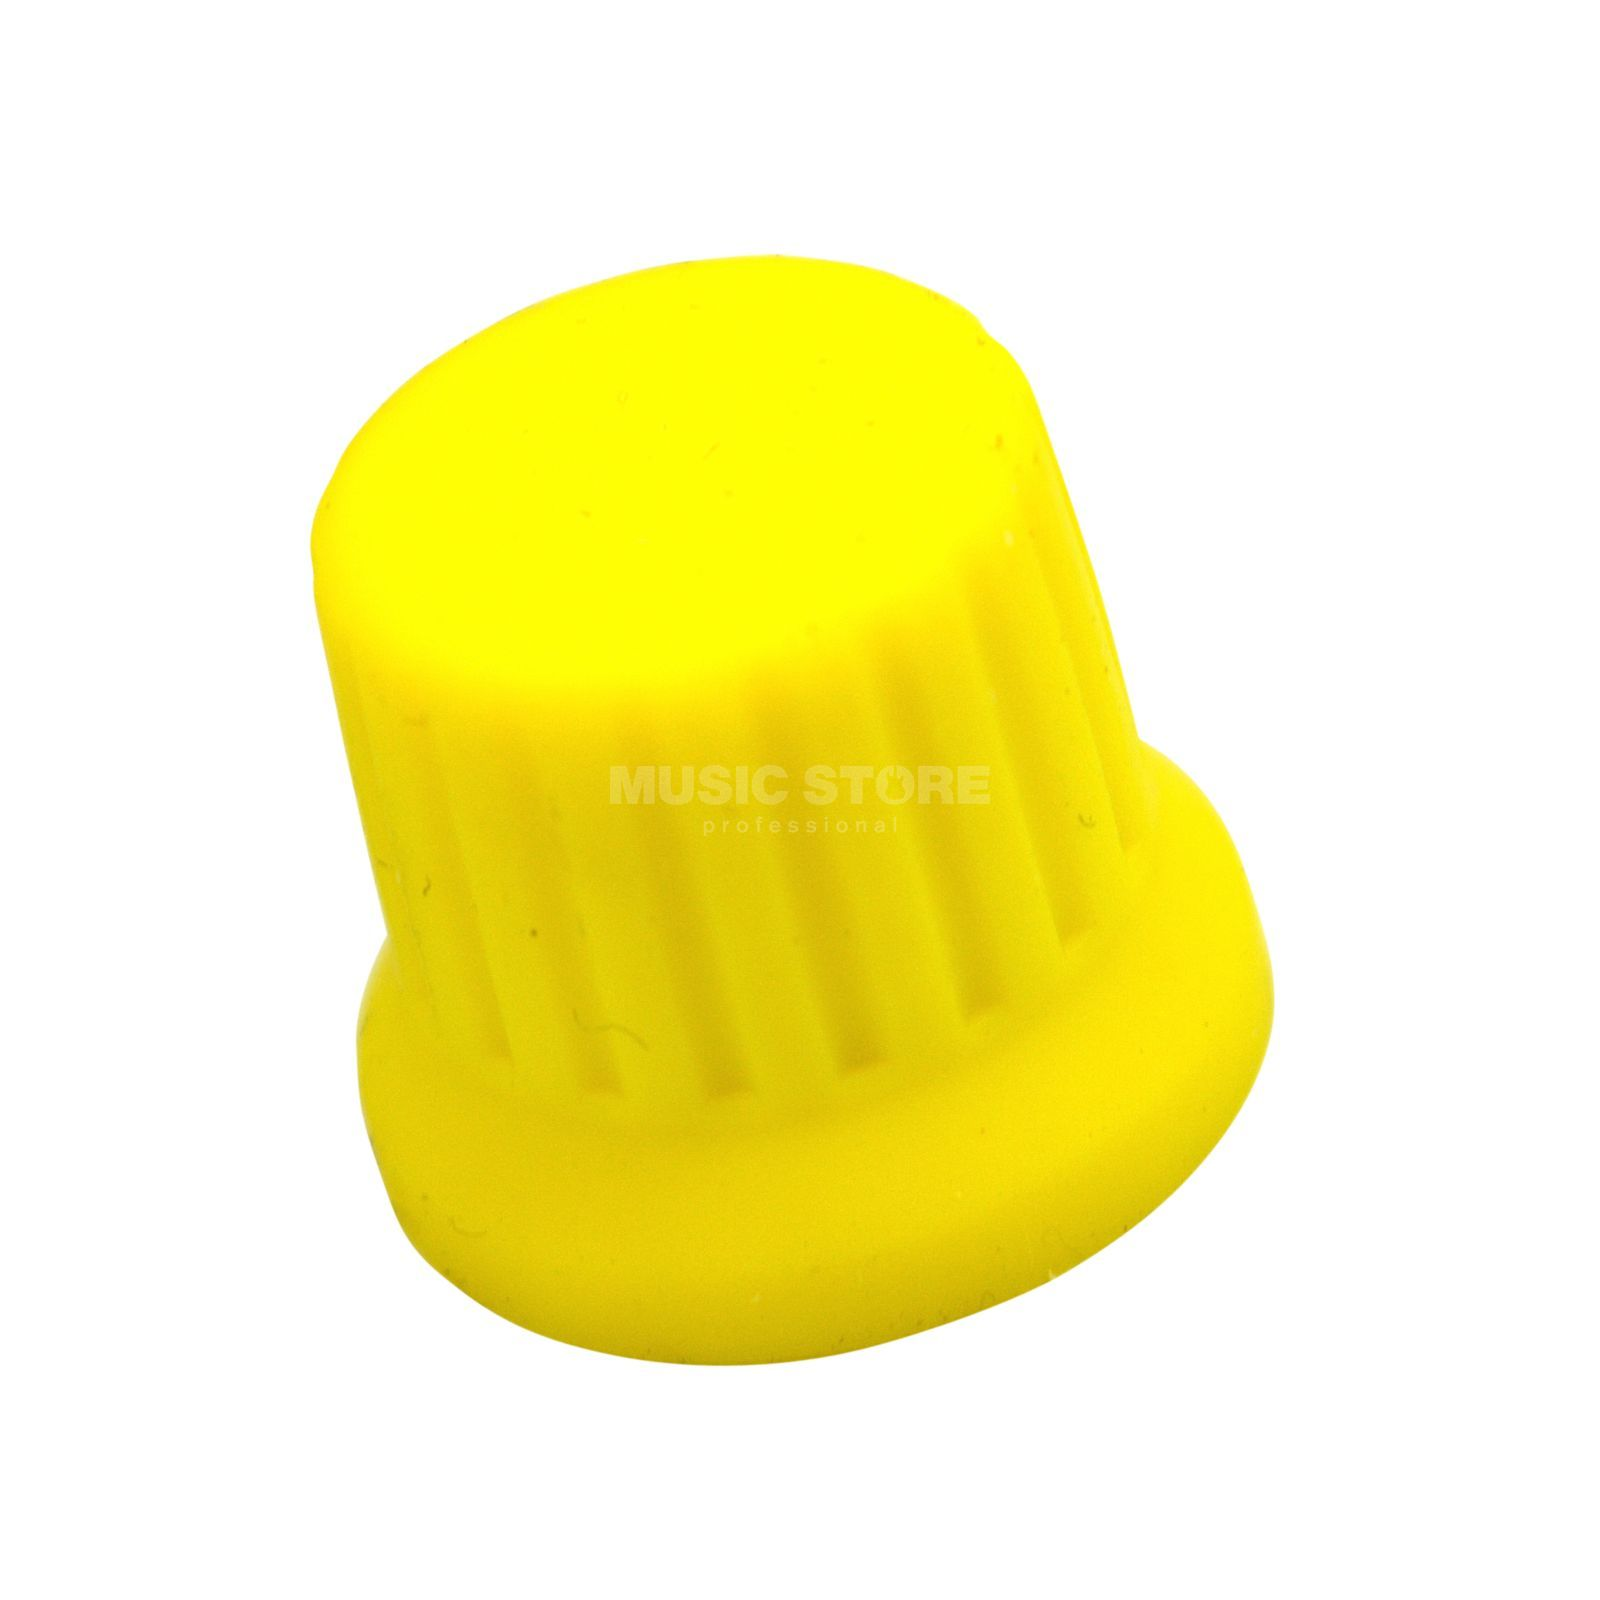 DJ TECHTOOLS Chroma Caps Bouton encodeur yellow Image du produit